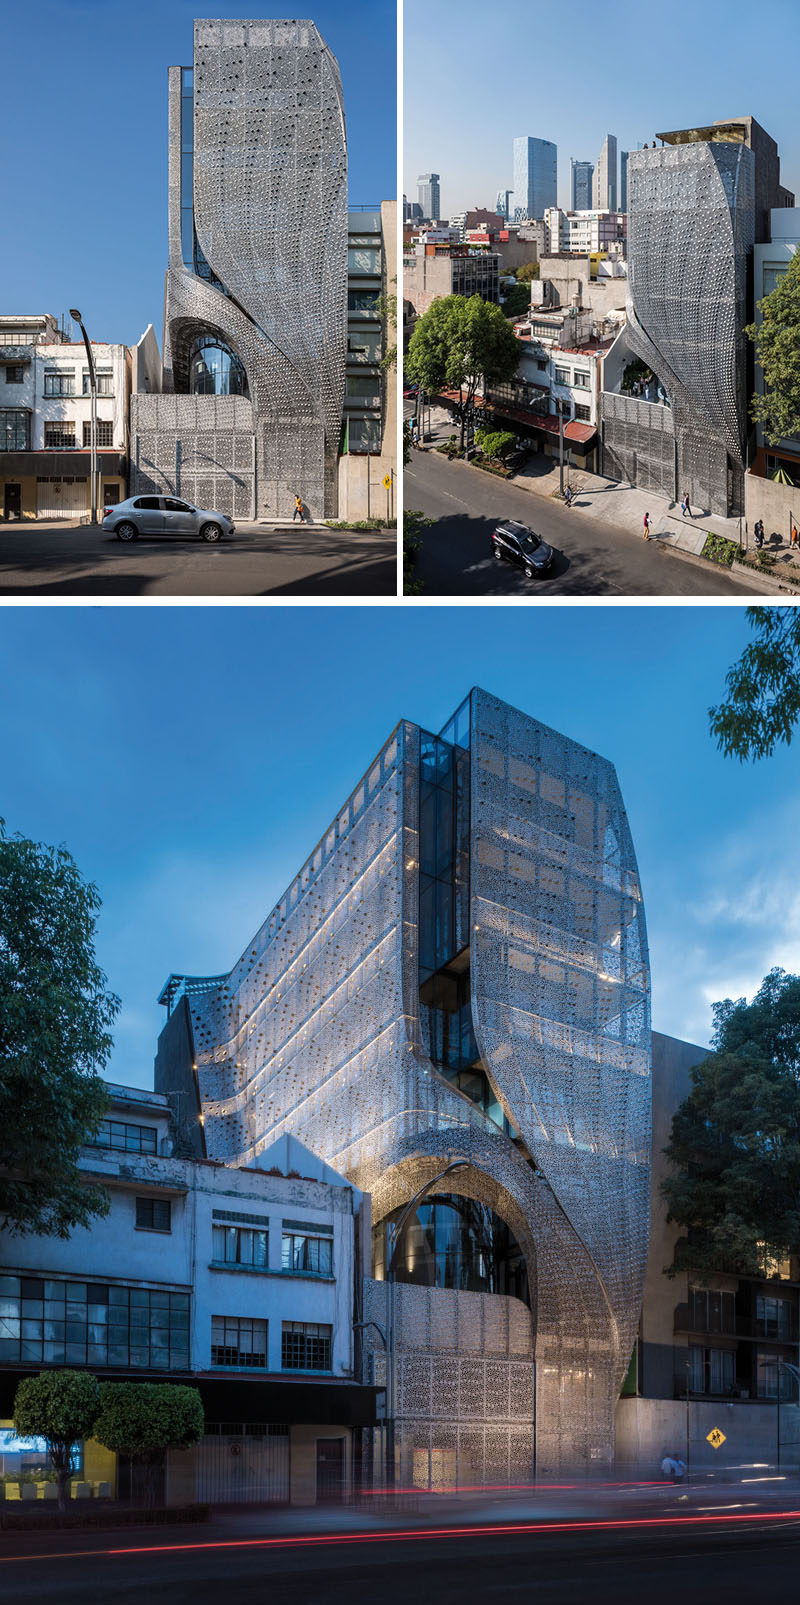 This modern office building in Mexico City, Mexico, has a perforated carbon-steel screen facade that follows the shape of the building, and has a delicate pattern that provides interior shadows and ventilation. #ModernArchitecture #ModernBuilding #BuildingFacade